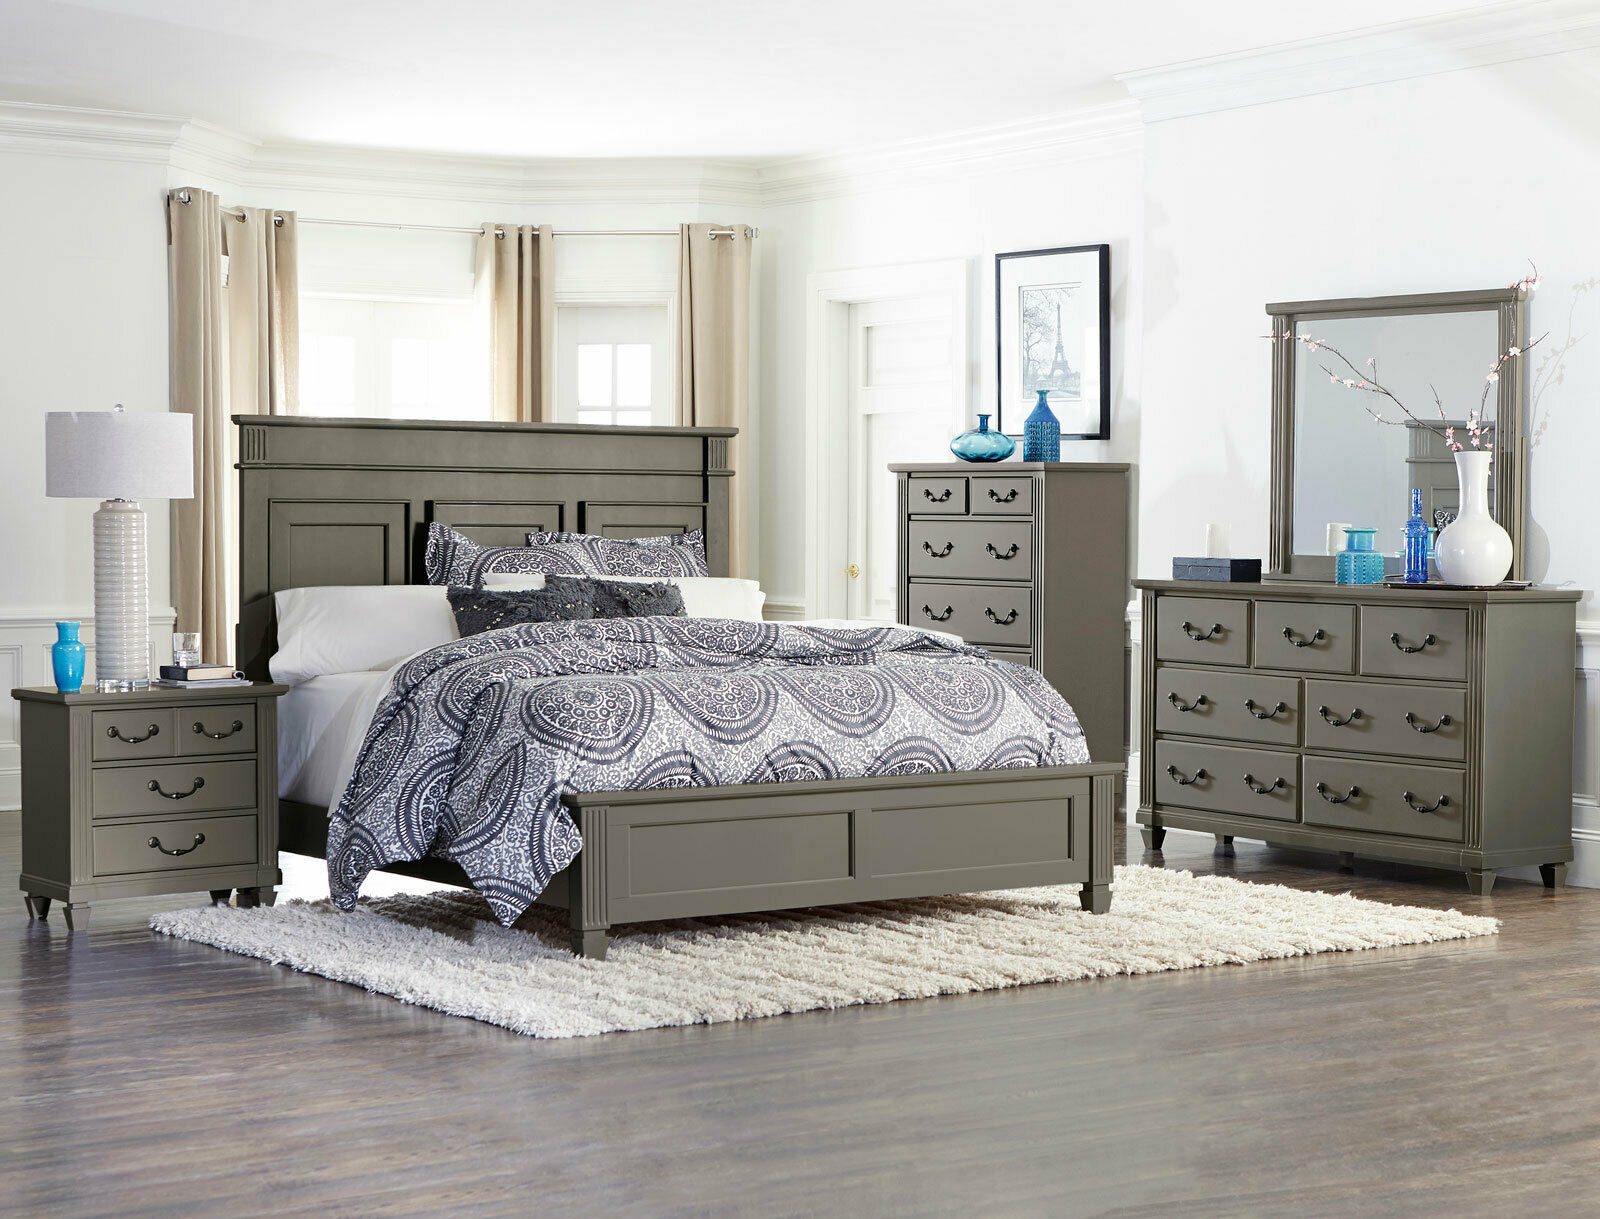 traditional gray wood master bedroom suite furniture